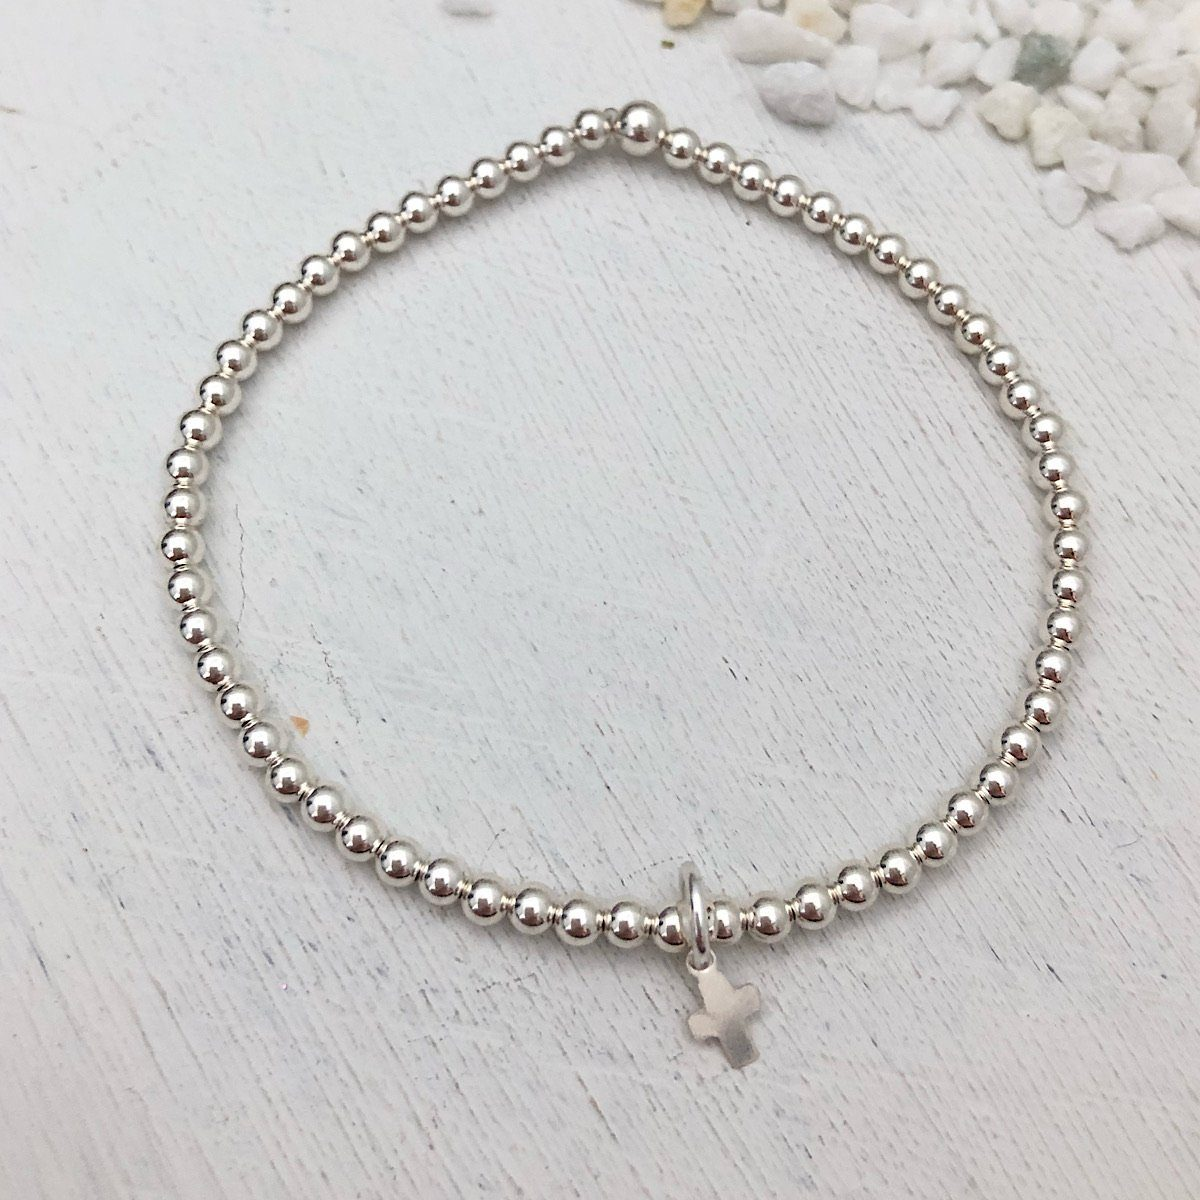 Tiny Cross Bead Bracelet Silver